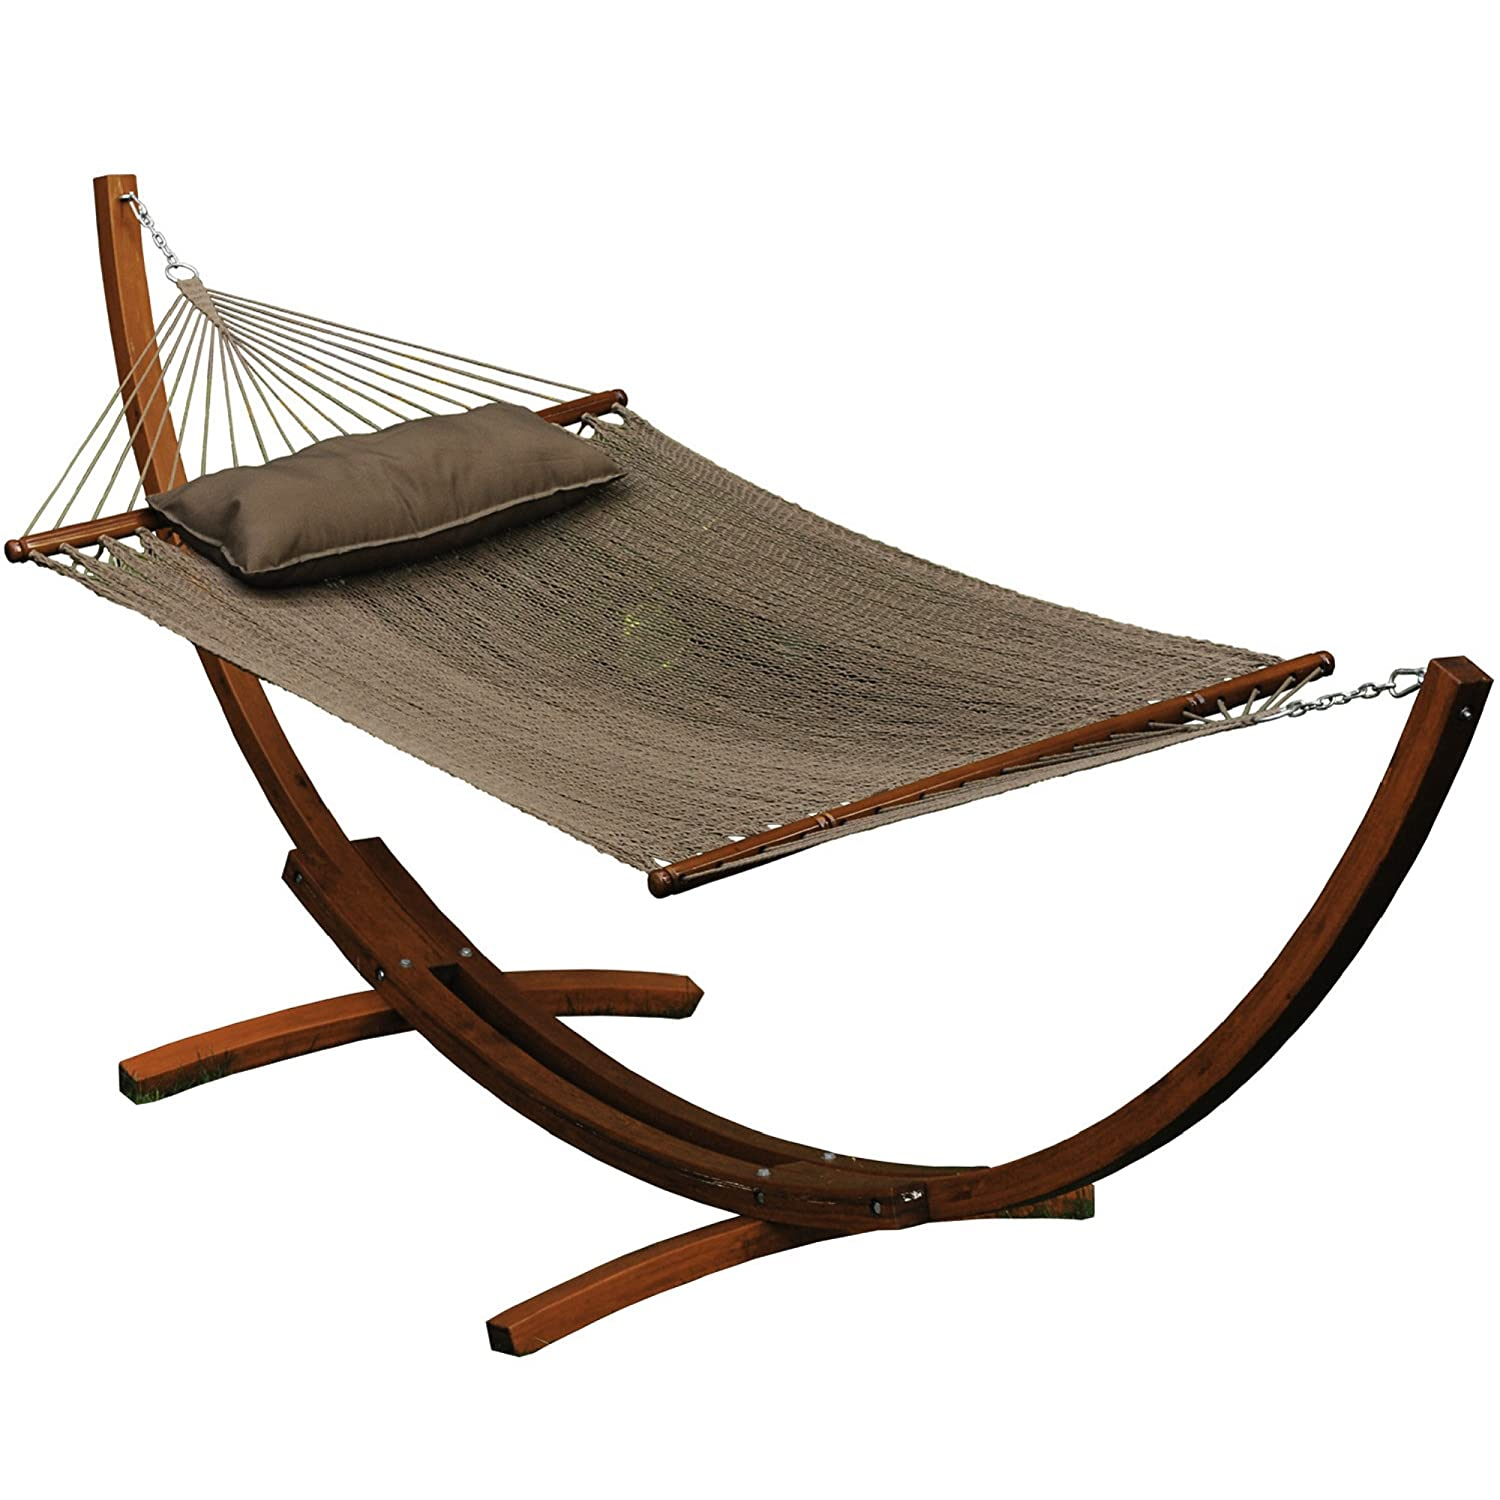 Amazon.com : Algoma 67104914SP Wooden Arc Frame Hammock And Pillow Combo,  12 Feet, Natural Caribbean : Garden U0026 Outdoor